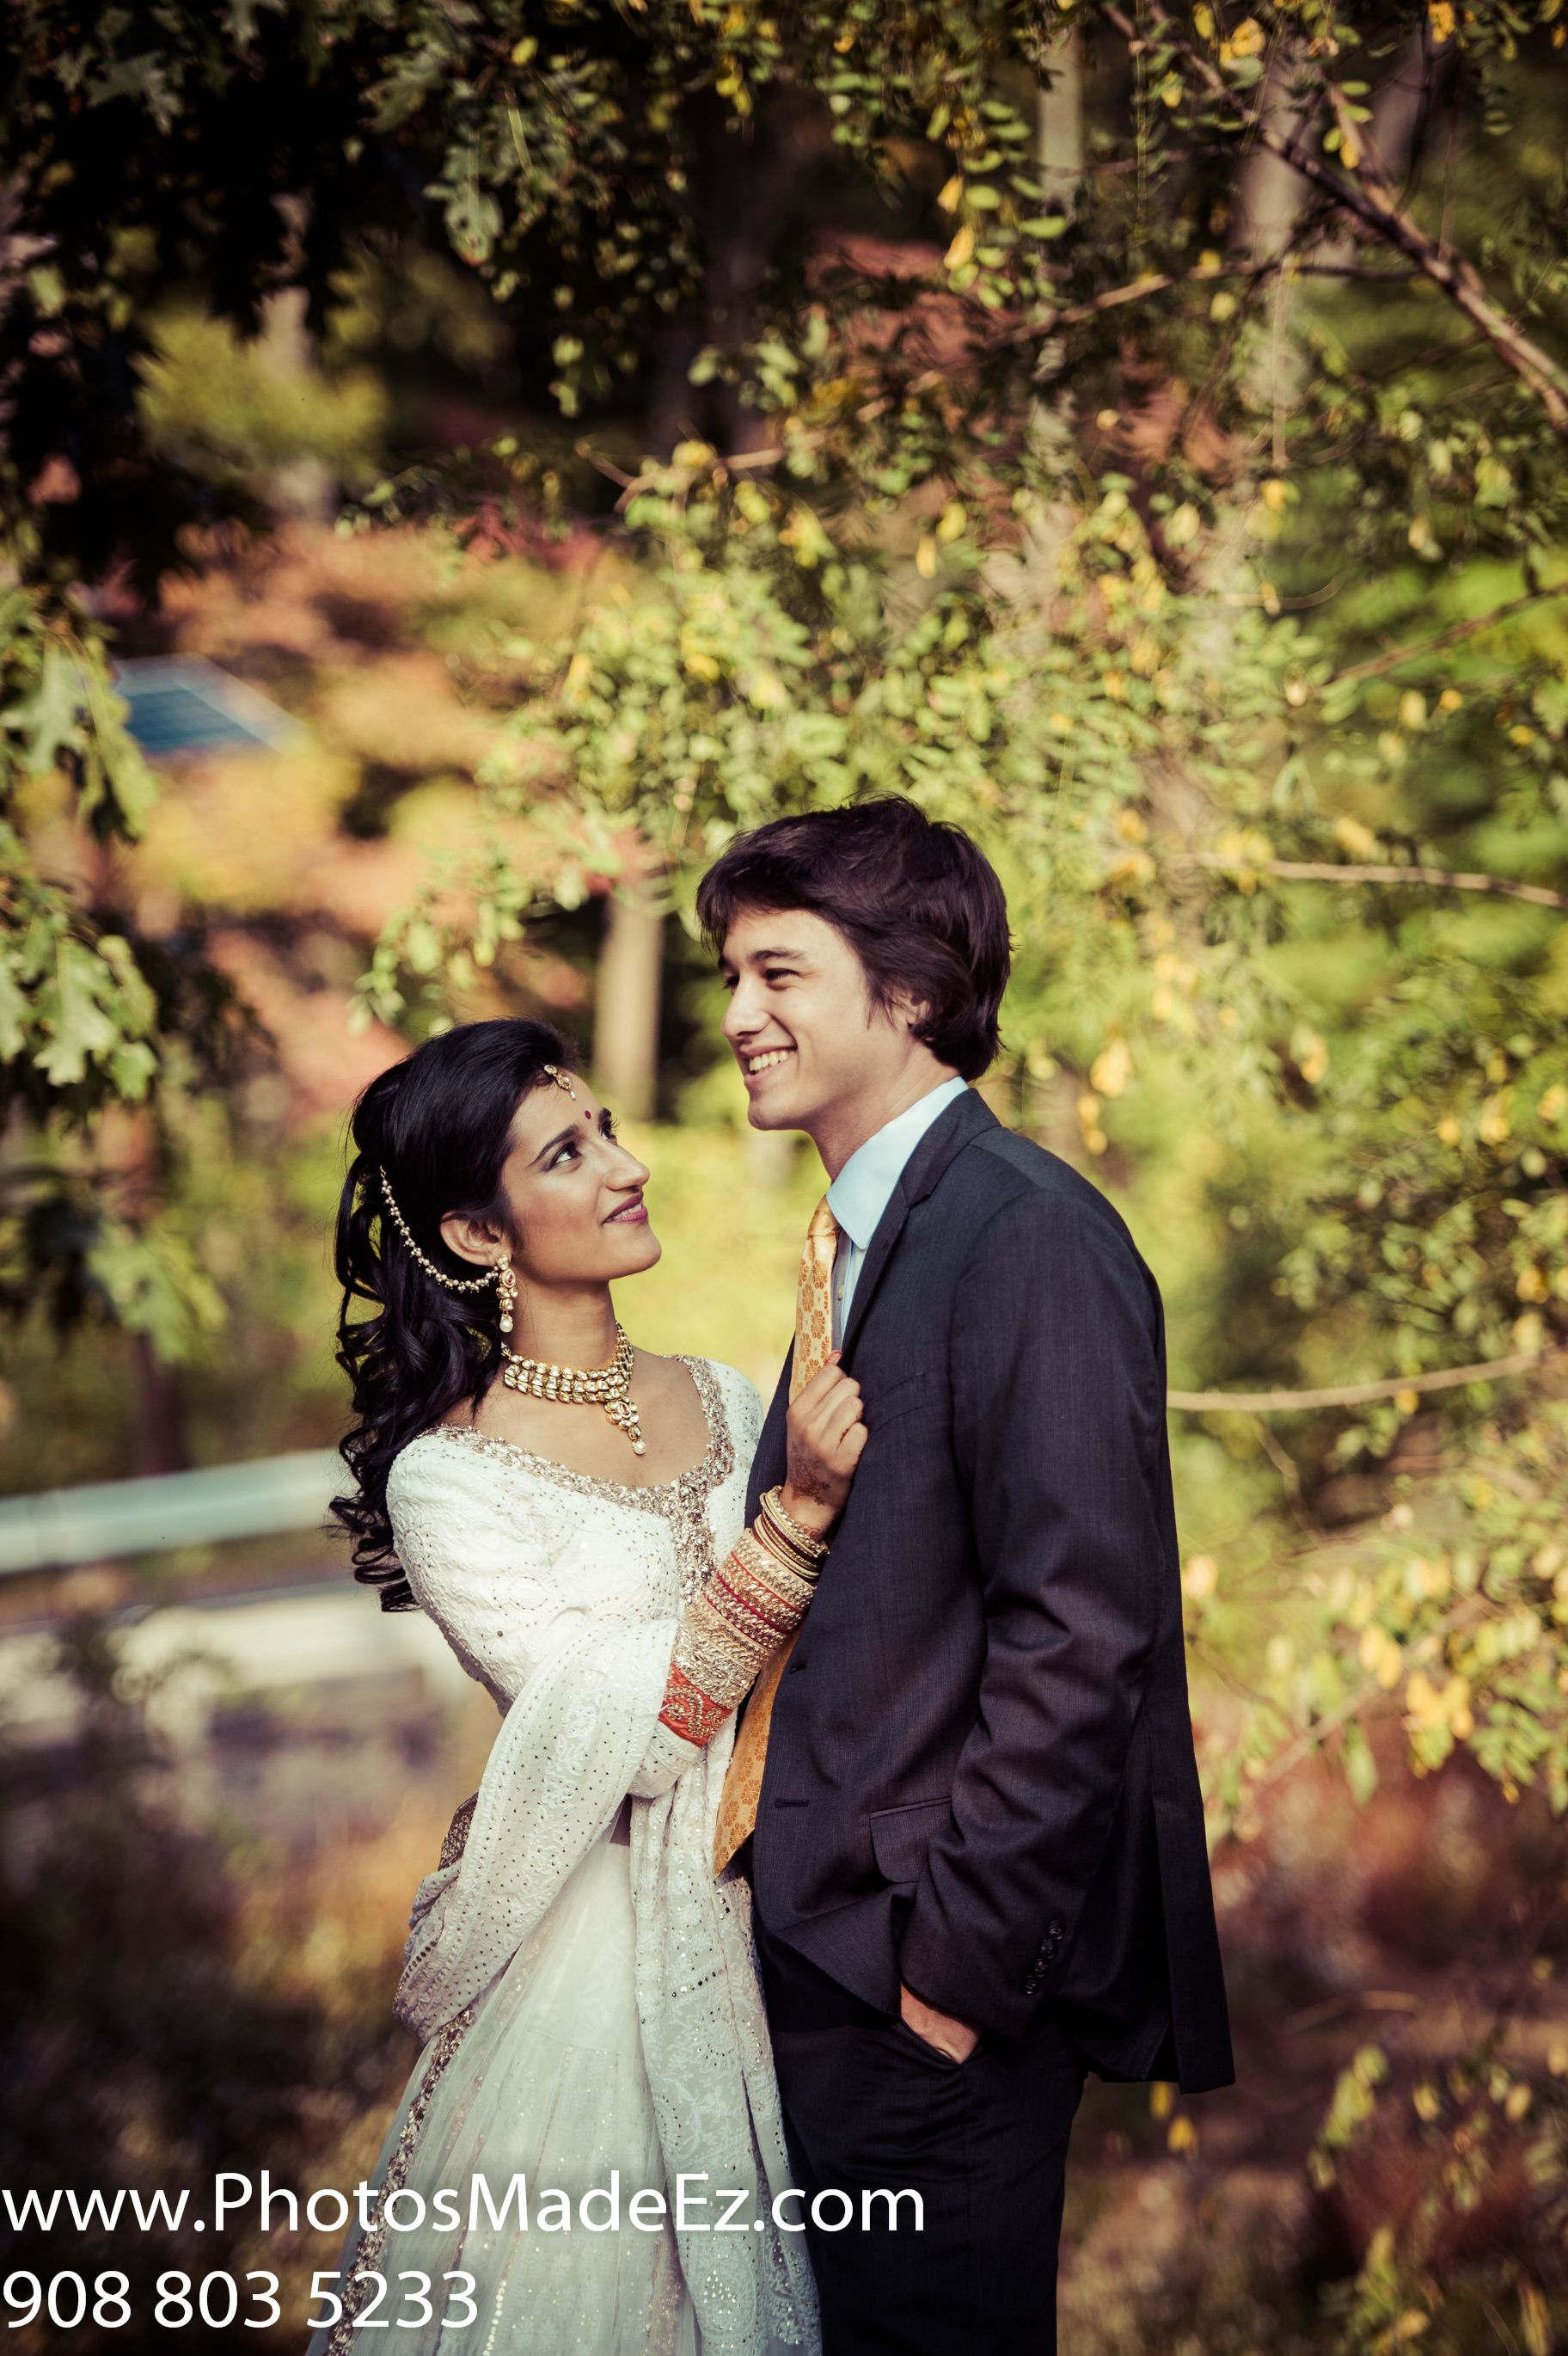 Indian Bride And American Groom Wedding In Nj Indian Bride And